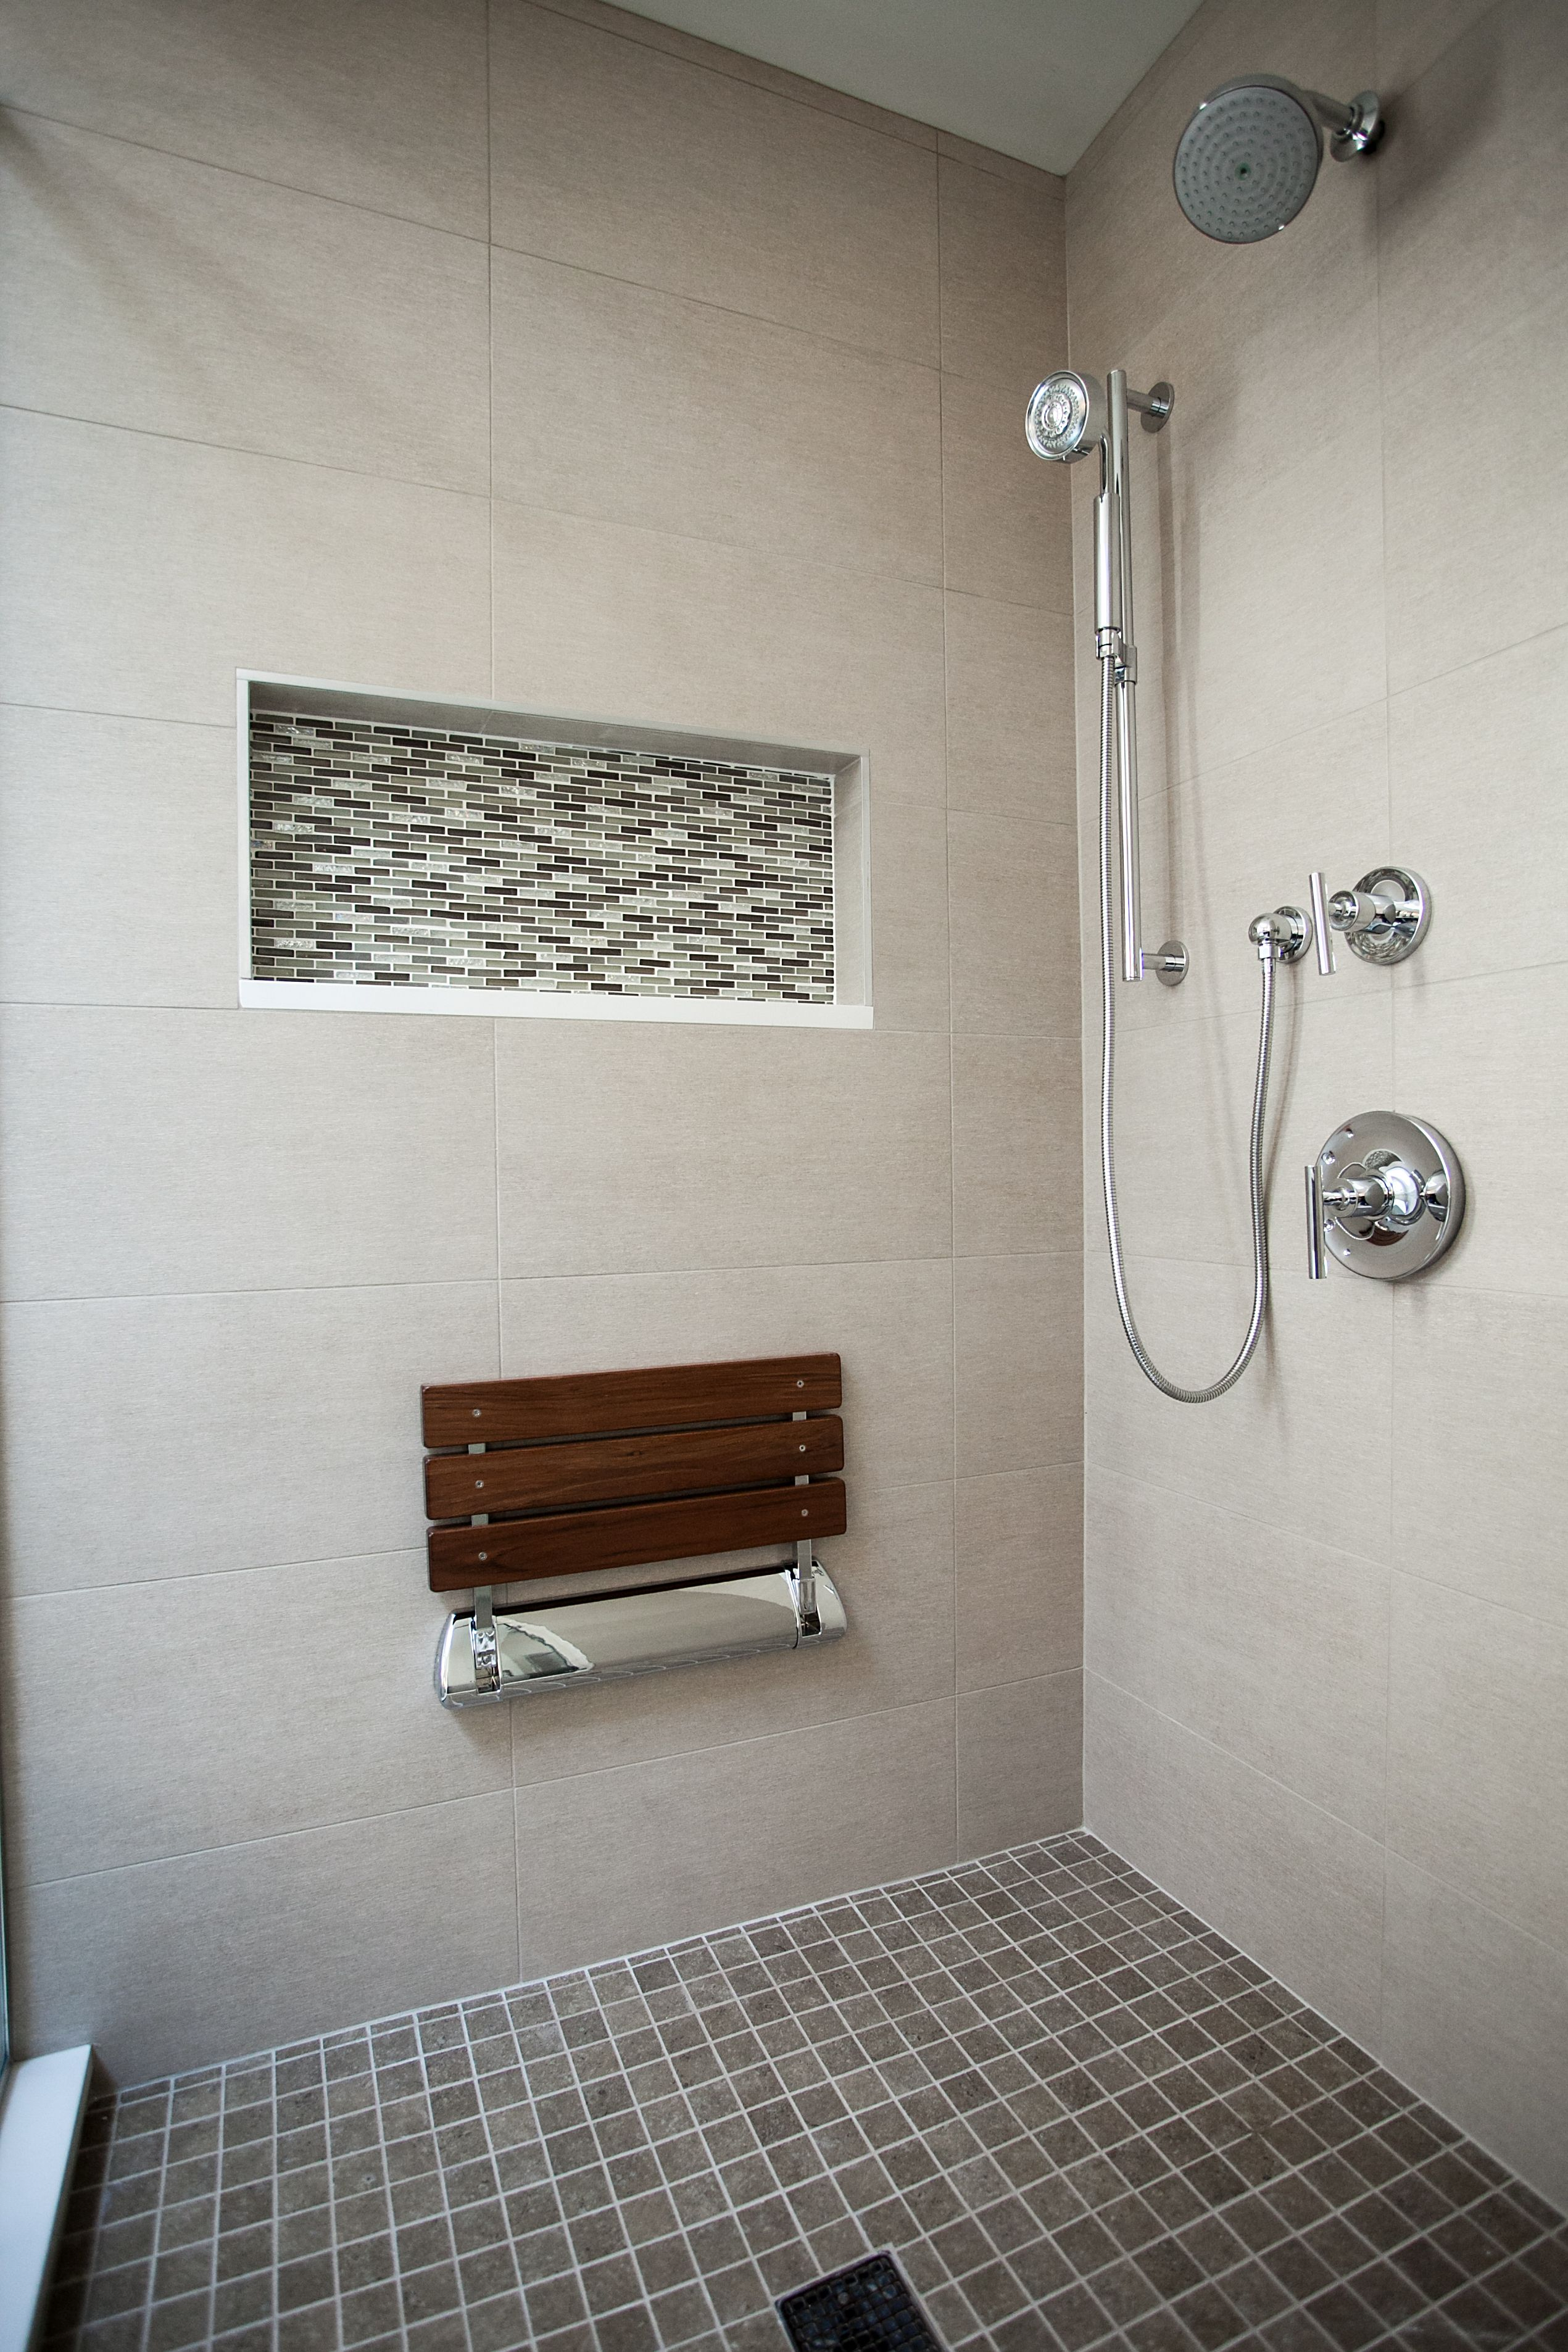 Contemporary Oasis In Naperville, IL Large Shower With Handheld Shower Head  On Slide Bar.